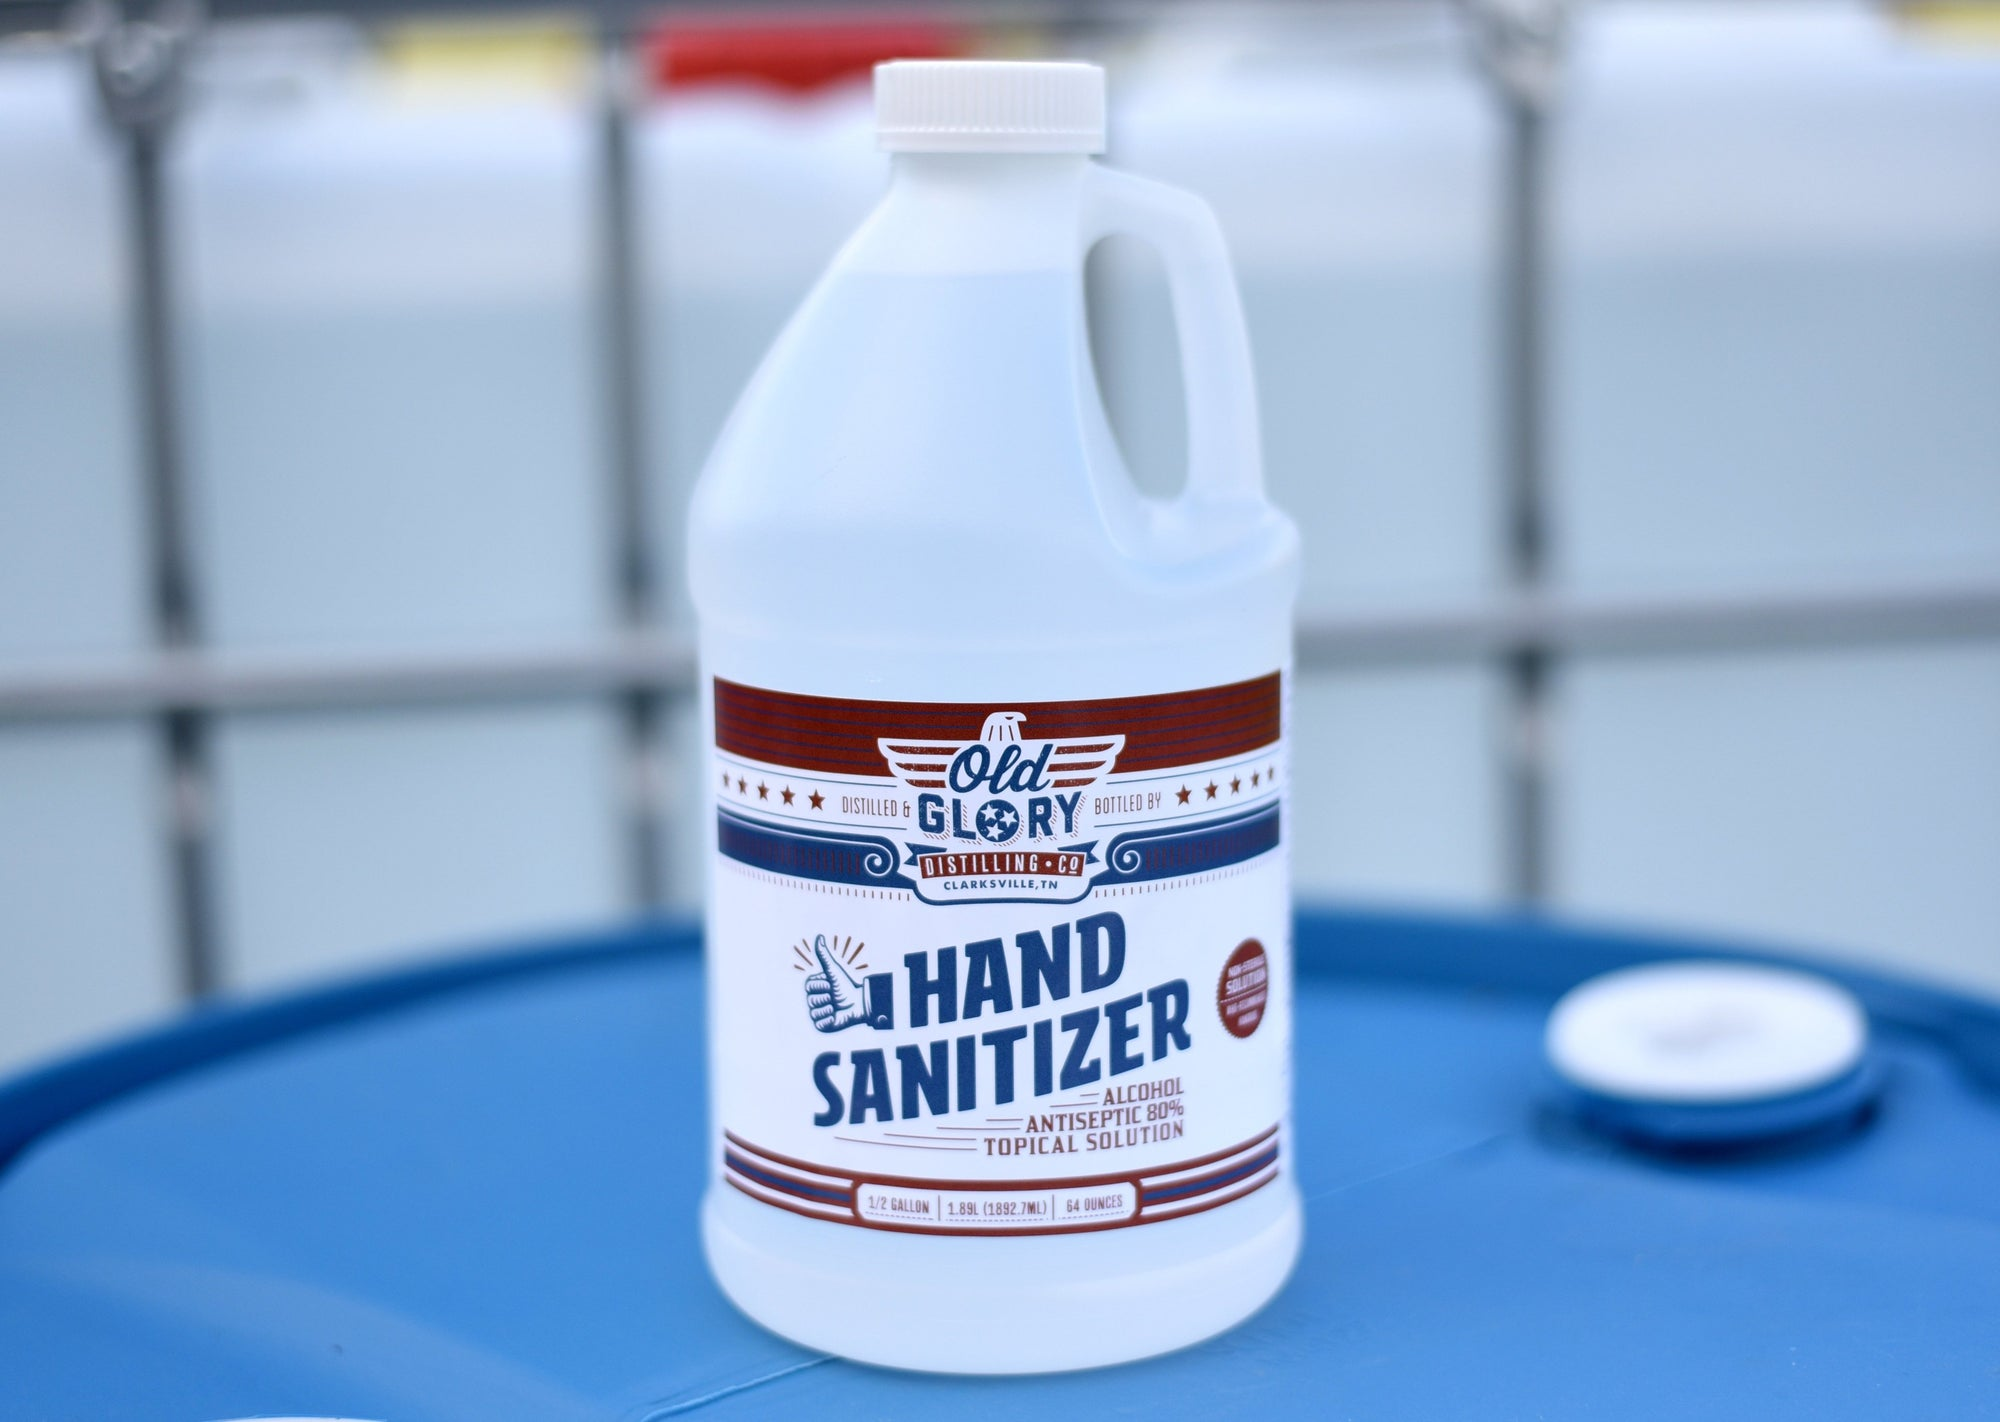 Old Glory 64oz Hand Sanitizer